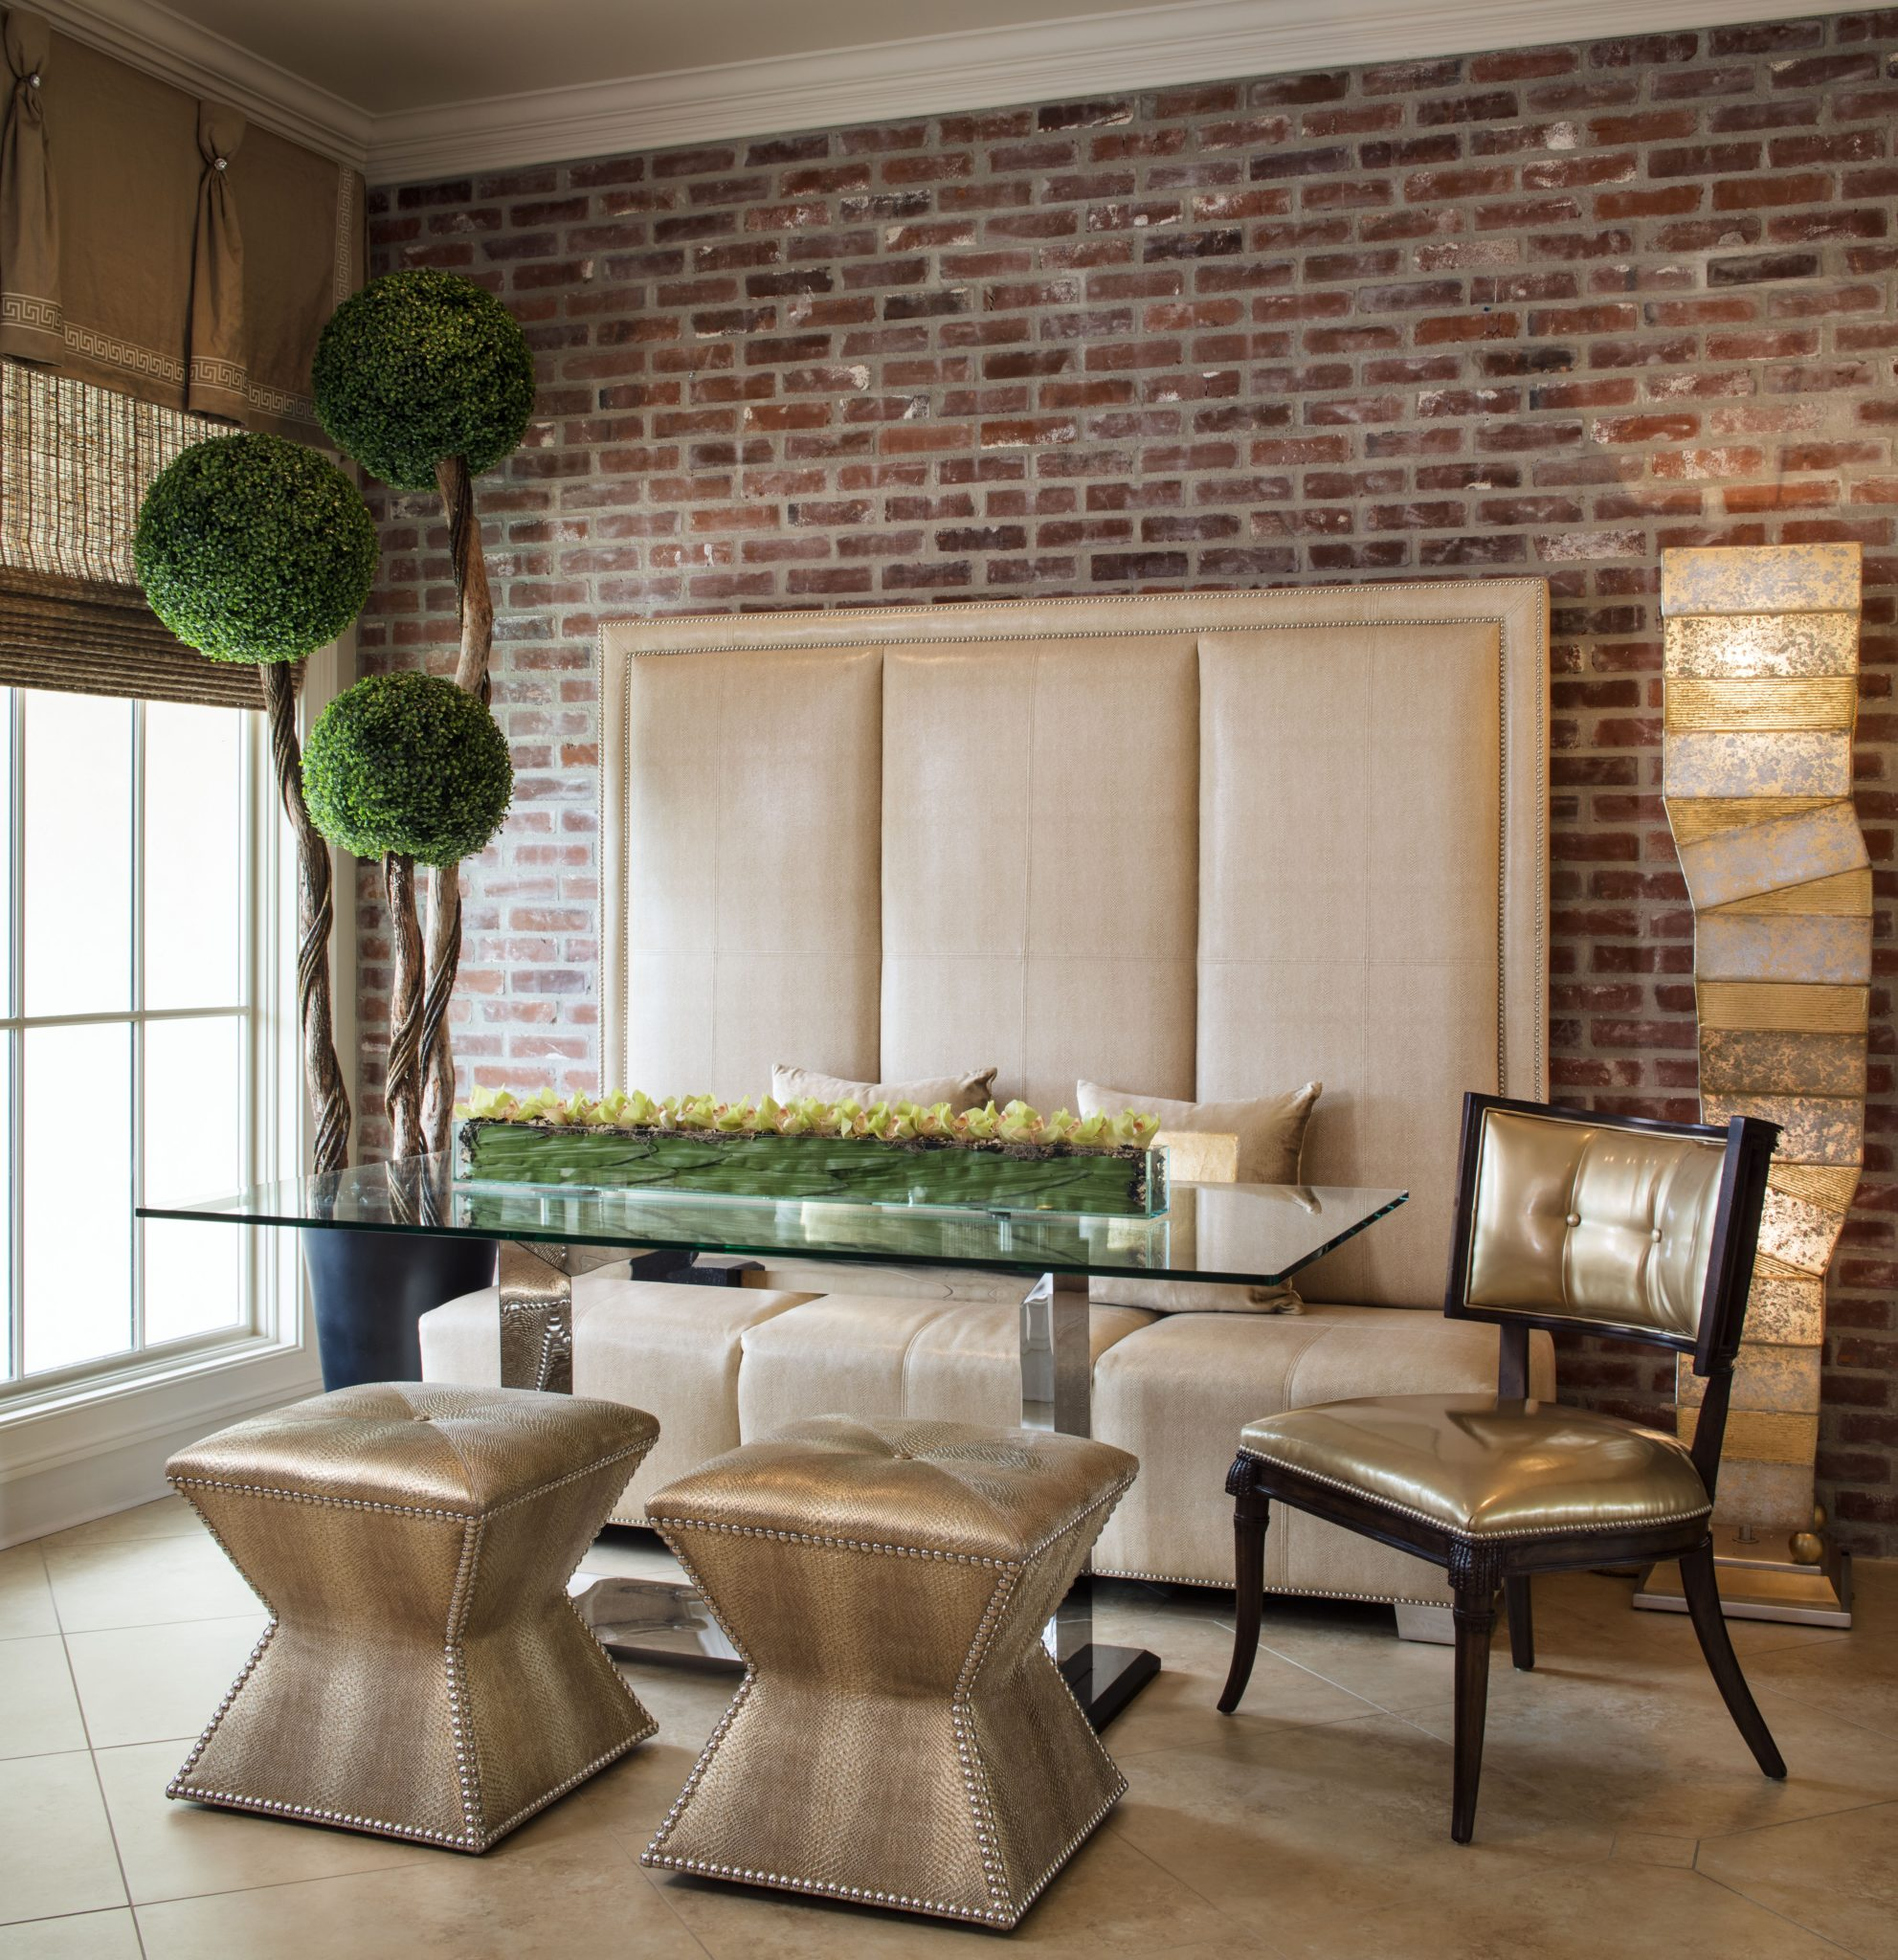 "Bringing in Banquette Seating   Restaurant design is a great resource to gather ideas for residential design and can provide several edgy solutions, according to Monique delaHoussaye-Breaux, president and principal designer of POSH Exclusive Interiors.  Widely used in restaurant design, banquette seating is used in residential spaces — like in breakfast areas and open-concept kitchens across all design styles. ""Banquette designs are my go-to when interior space is limited,"" says delaHoussaye-Breaux, who often uses the style in residential high-rise and condo environments.   ""I think one of the easiest trends to translate from bar and restaurant design to residential projects is the combination of banquettes and chairs in dining areas,"" says Quach of Workshop/APD."